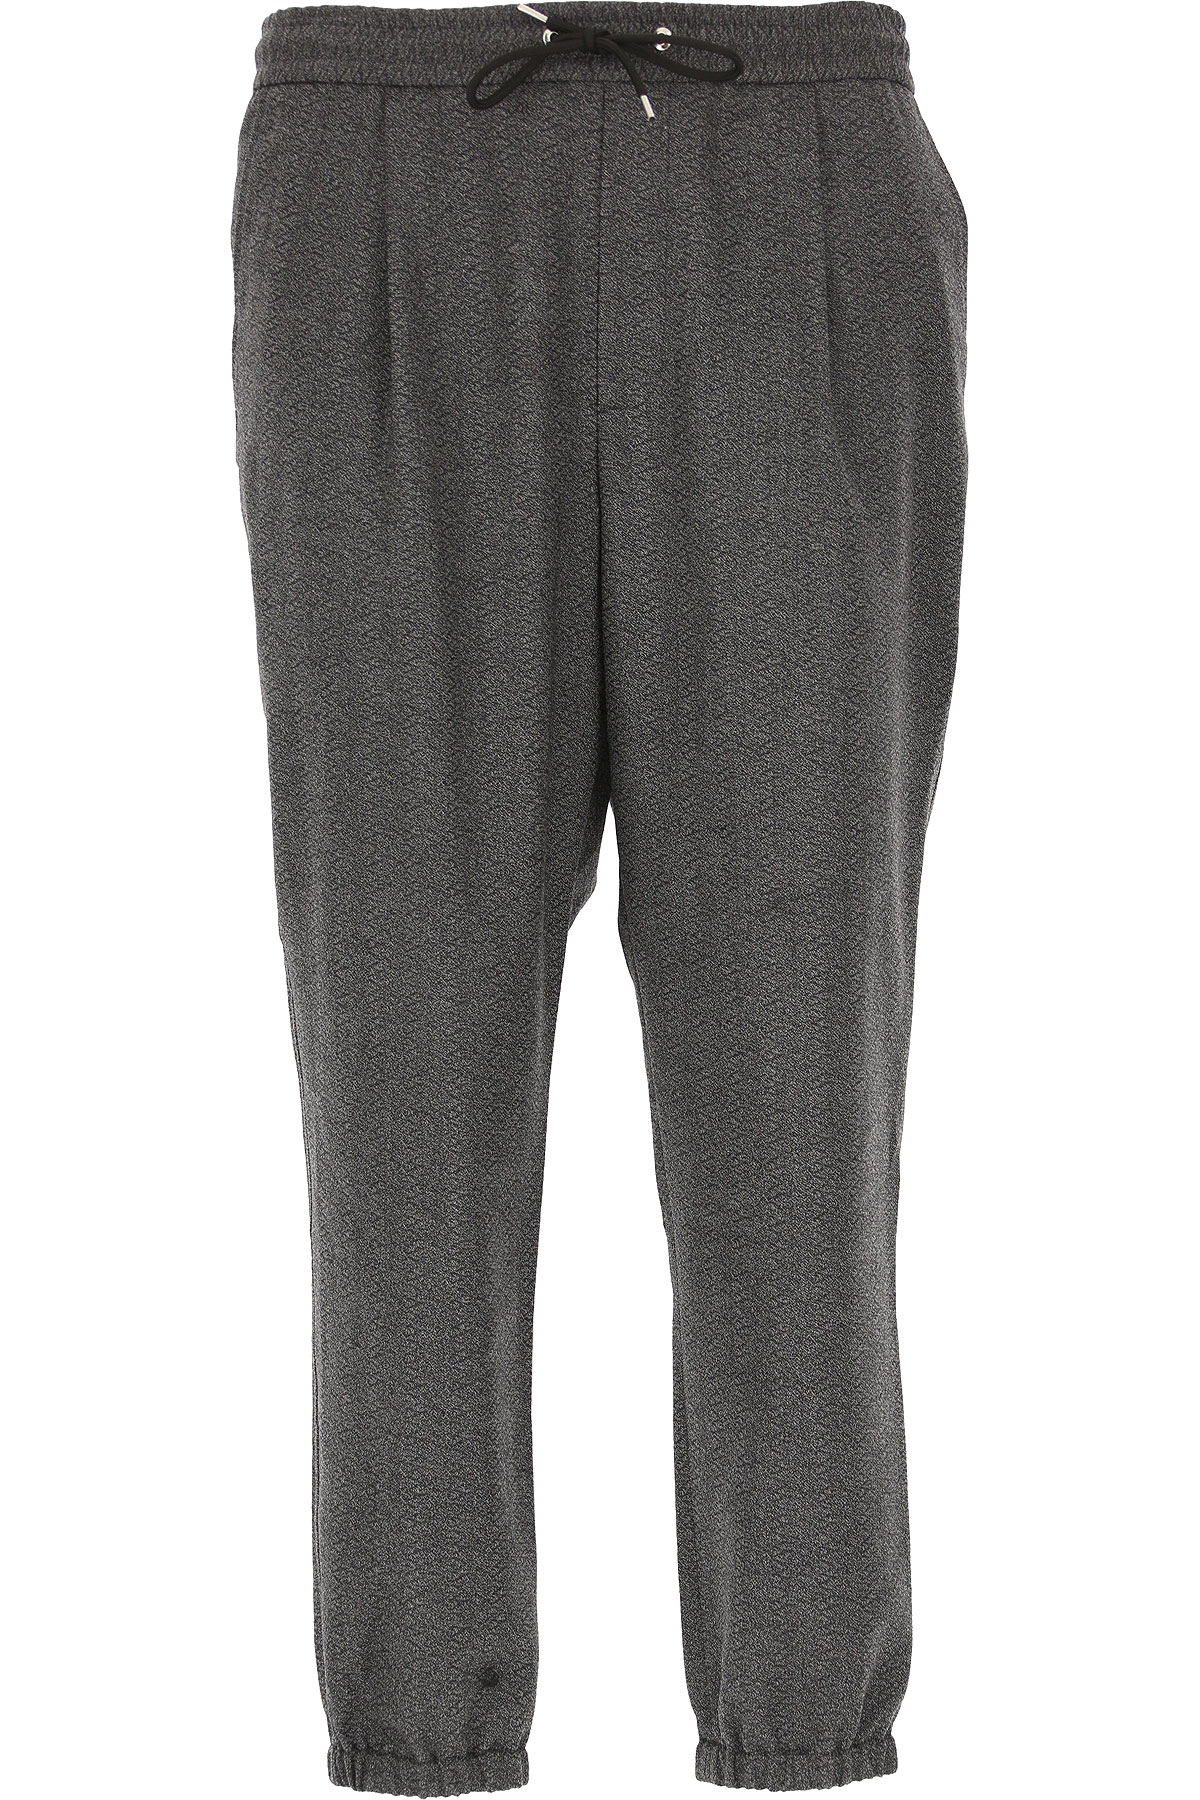 Alexander McQueen McQ Pants for Men On Sale in Outlet, Charcoal Grey, Wool, 2019, 30 32 34 36